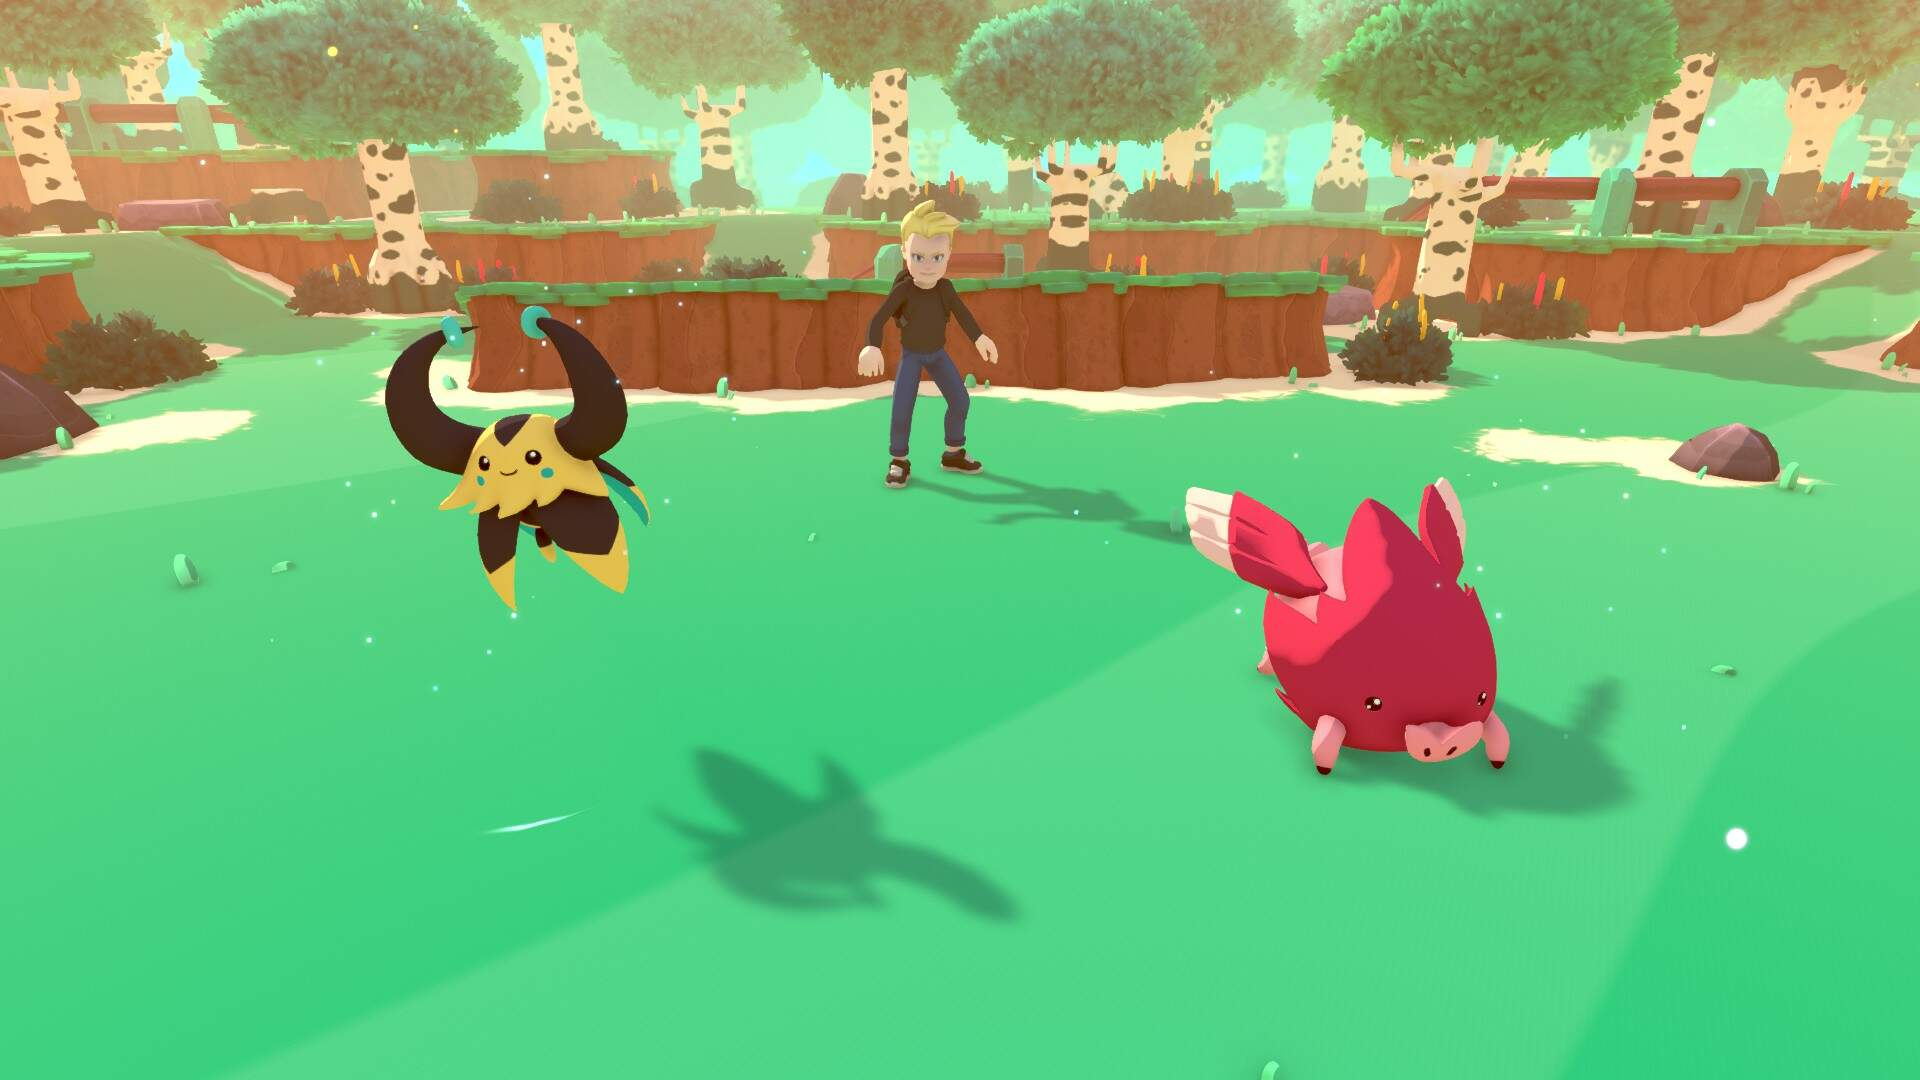 Temtem: How to Find and Check Quests and Side Quests